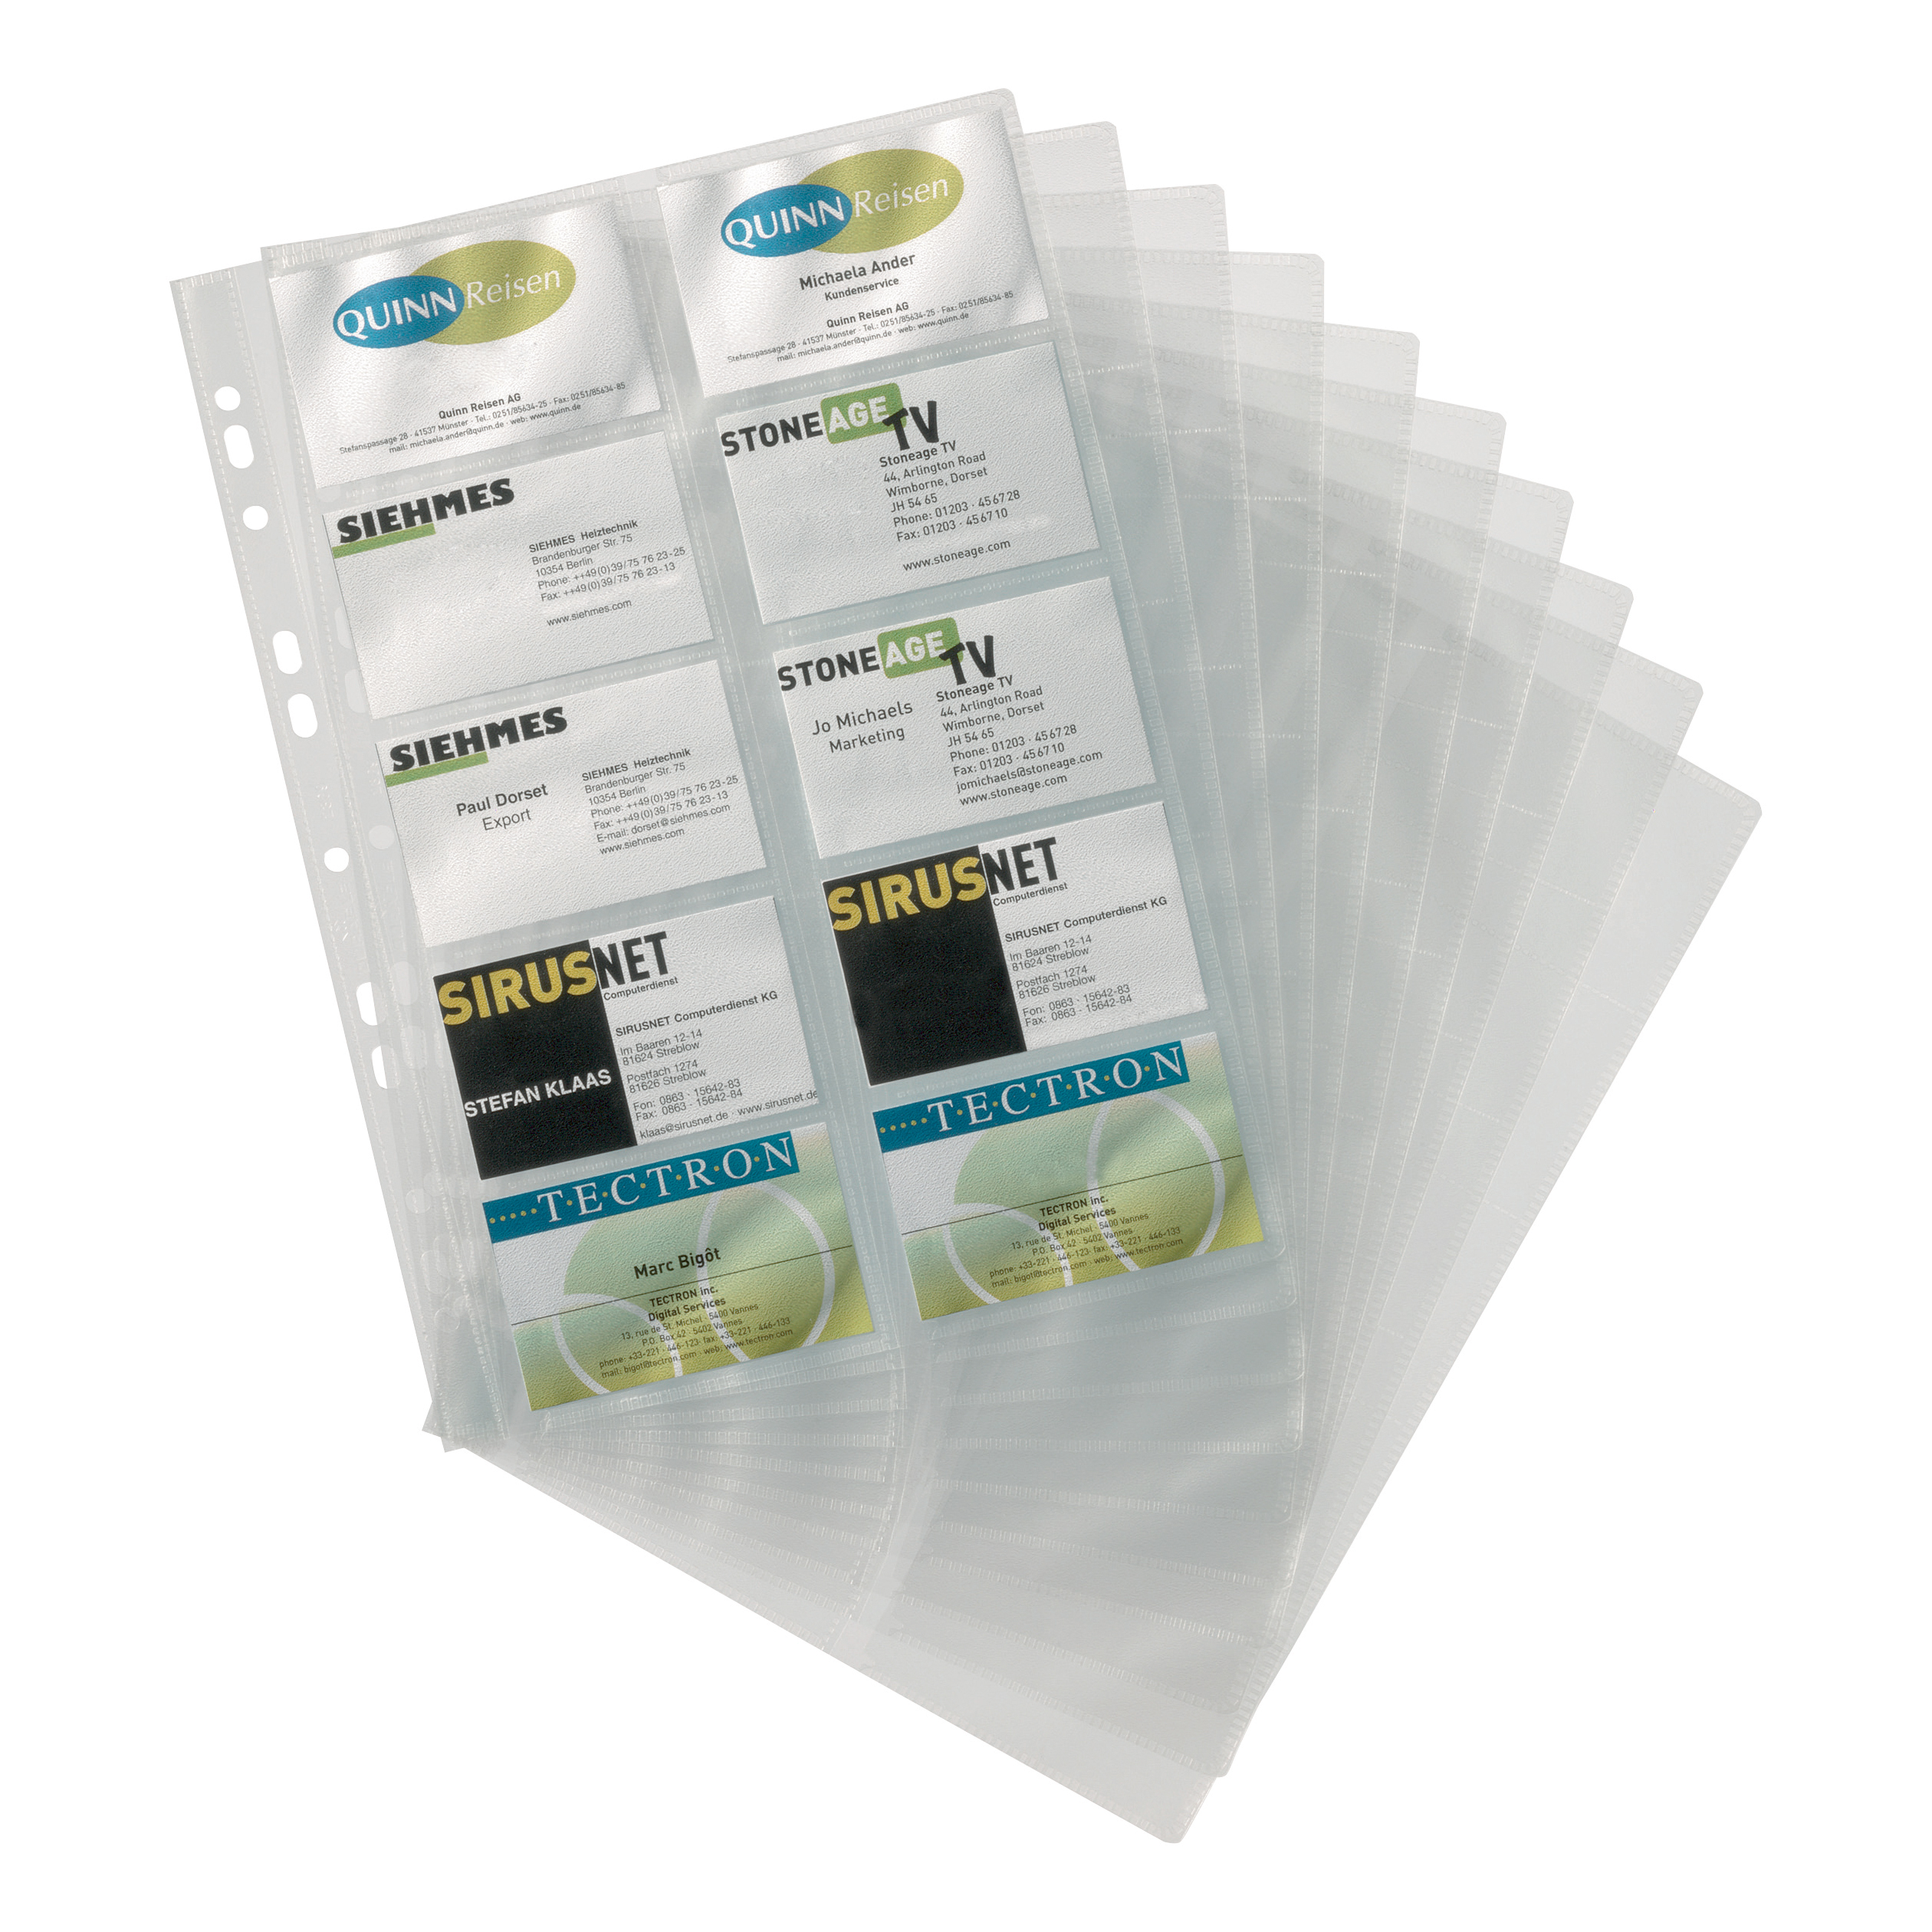 Image for Durable Visifix Refill Set for A4 Business Card Album Capacity 200 57x90mm Cards Ref 2388/36